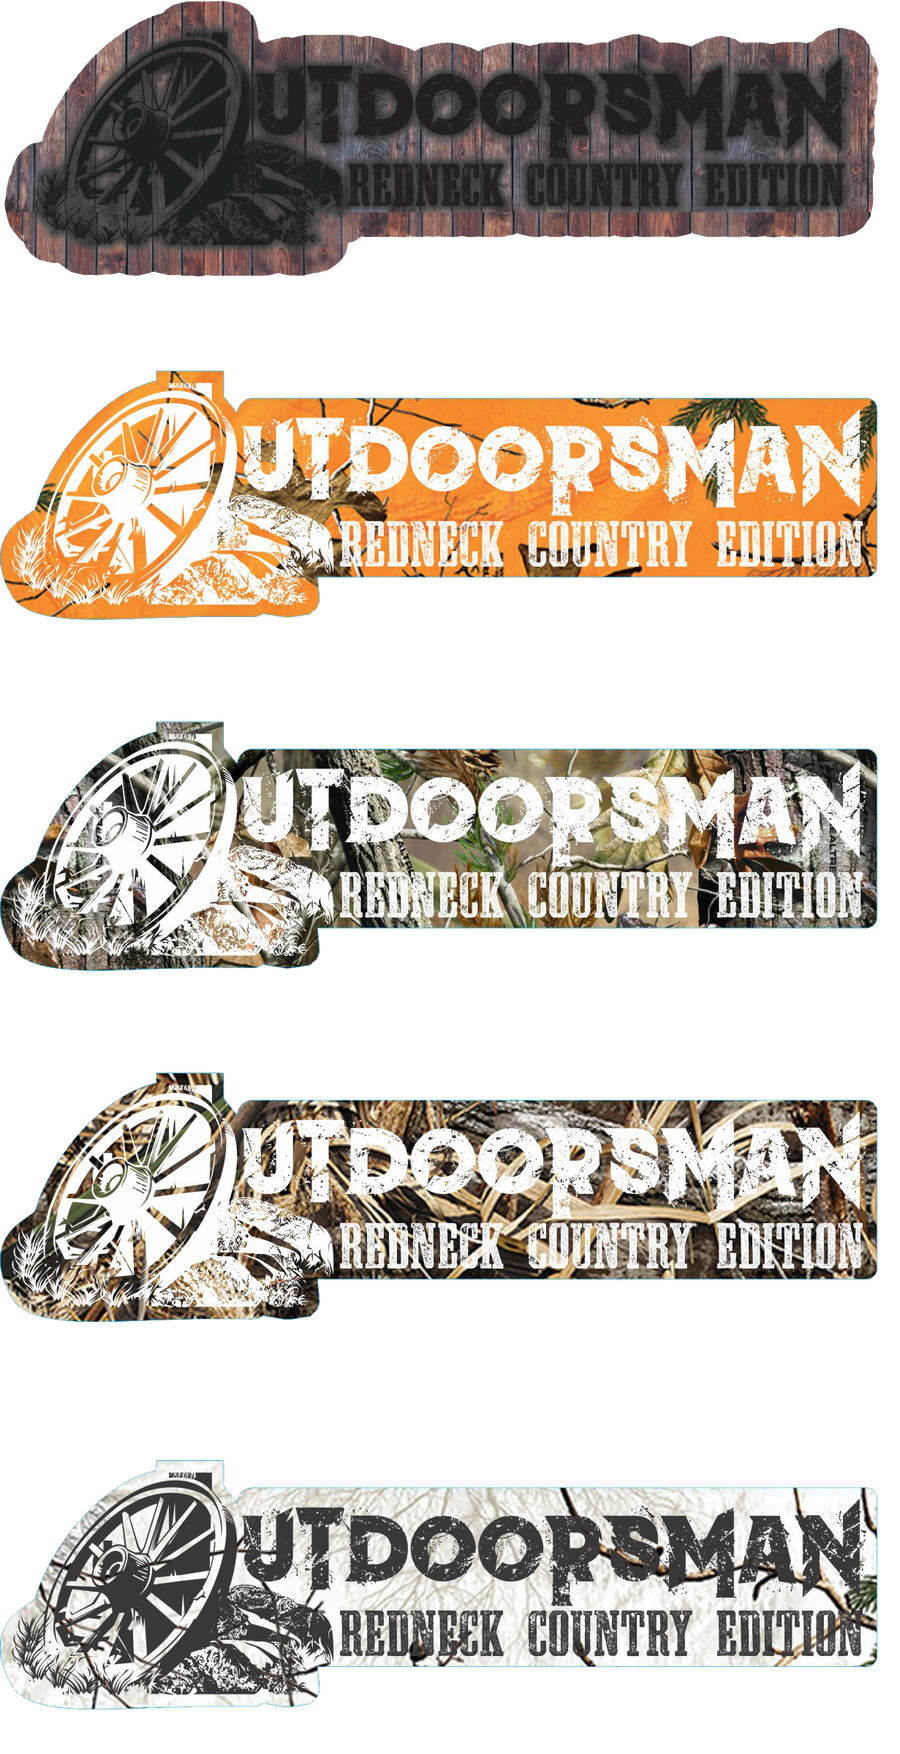 Image of Outdoorsman - Redneck Country Edition